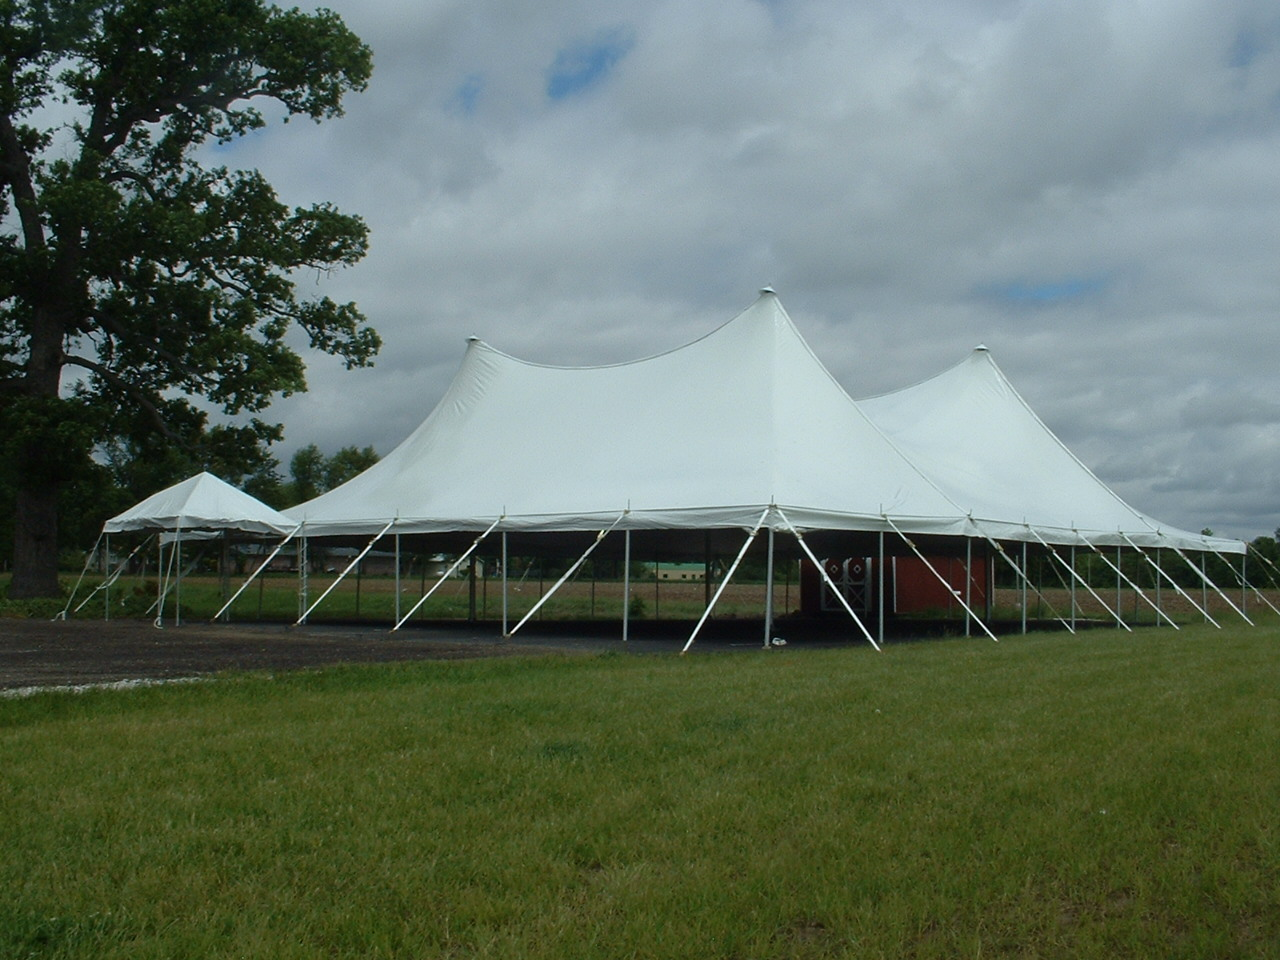 Buena Vista Farms, Chapin, IL, 60×70 EuroTent with 10x10 Celebration Frame Entrance Tent